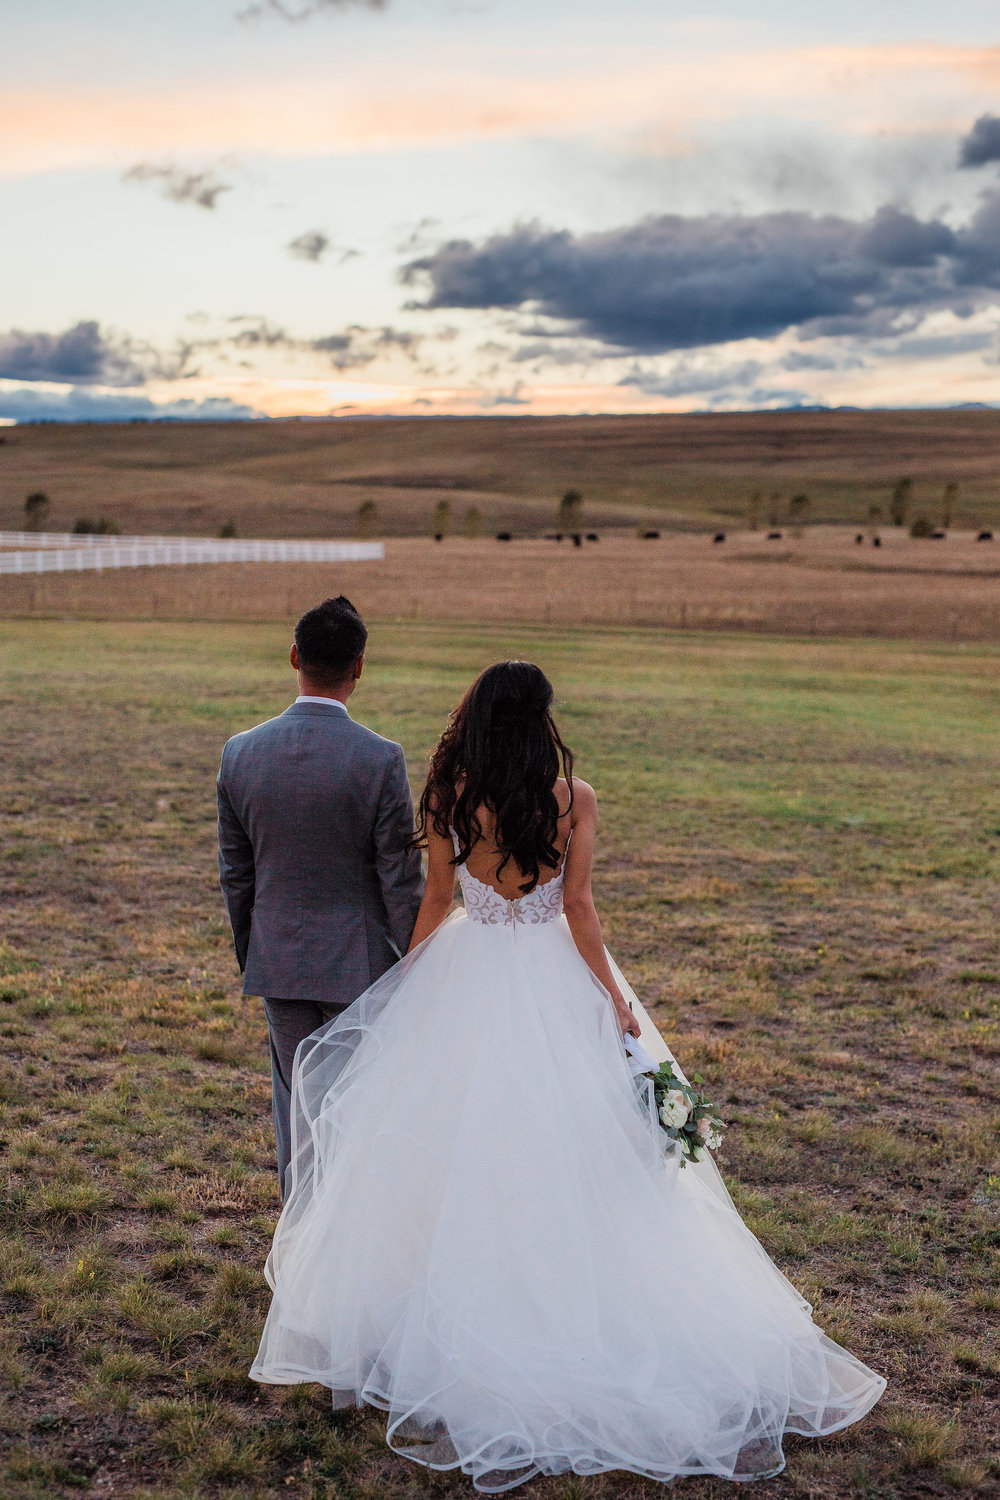 Sunset portraits on wedding day in Colorado